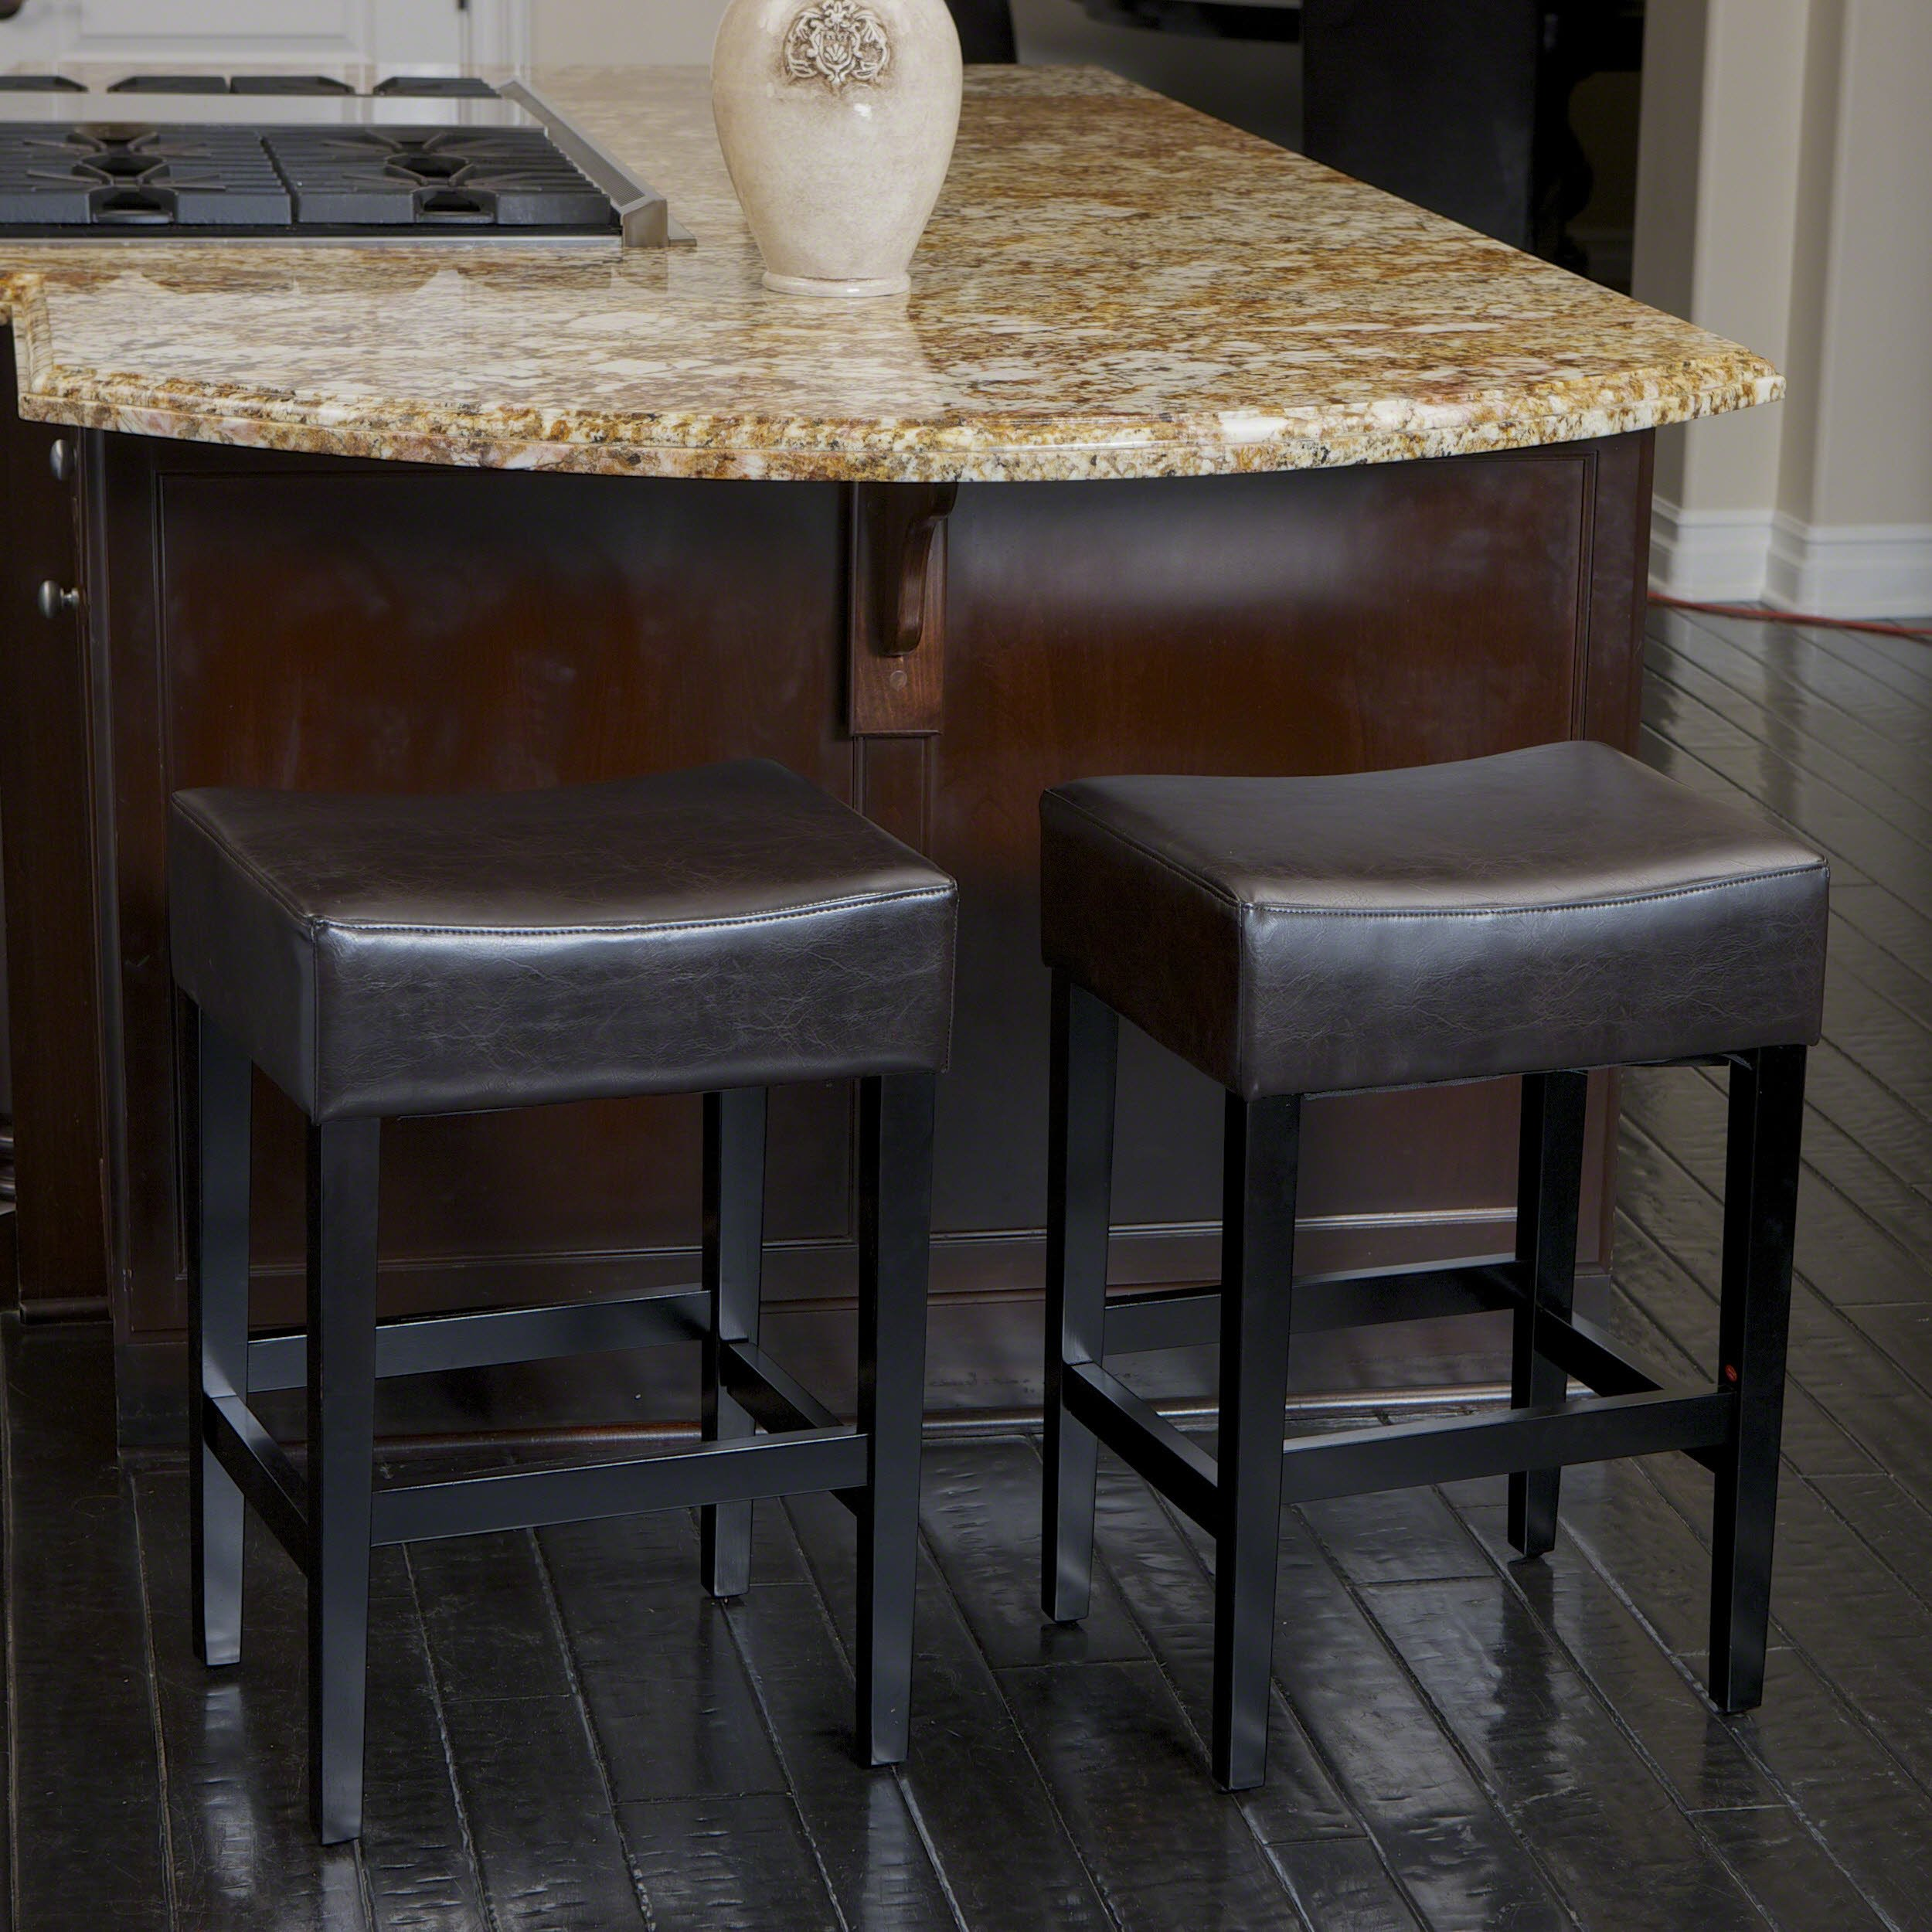 Christopher Knight Home 237526 Duff Counter Stools, 18.13''W x 15.00''D x 26.75''H, Brown by Christopher Knight Home